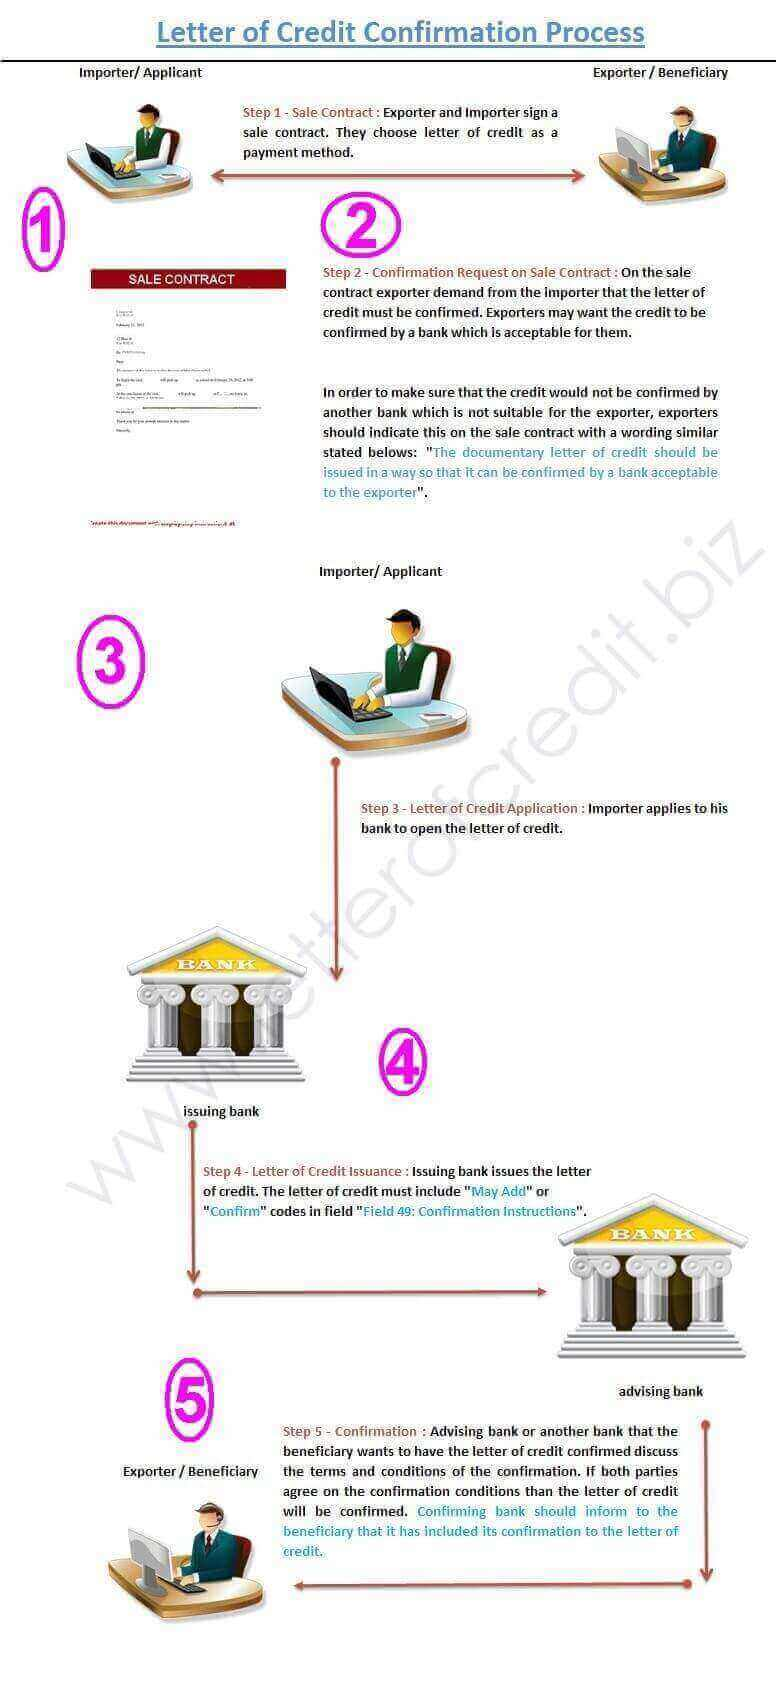 Figure 1 : Step by step explanation of letter of credit confirmation process